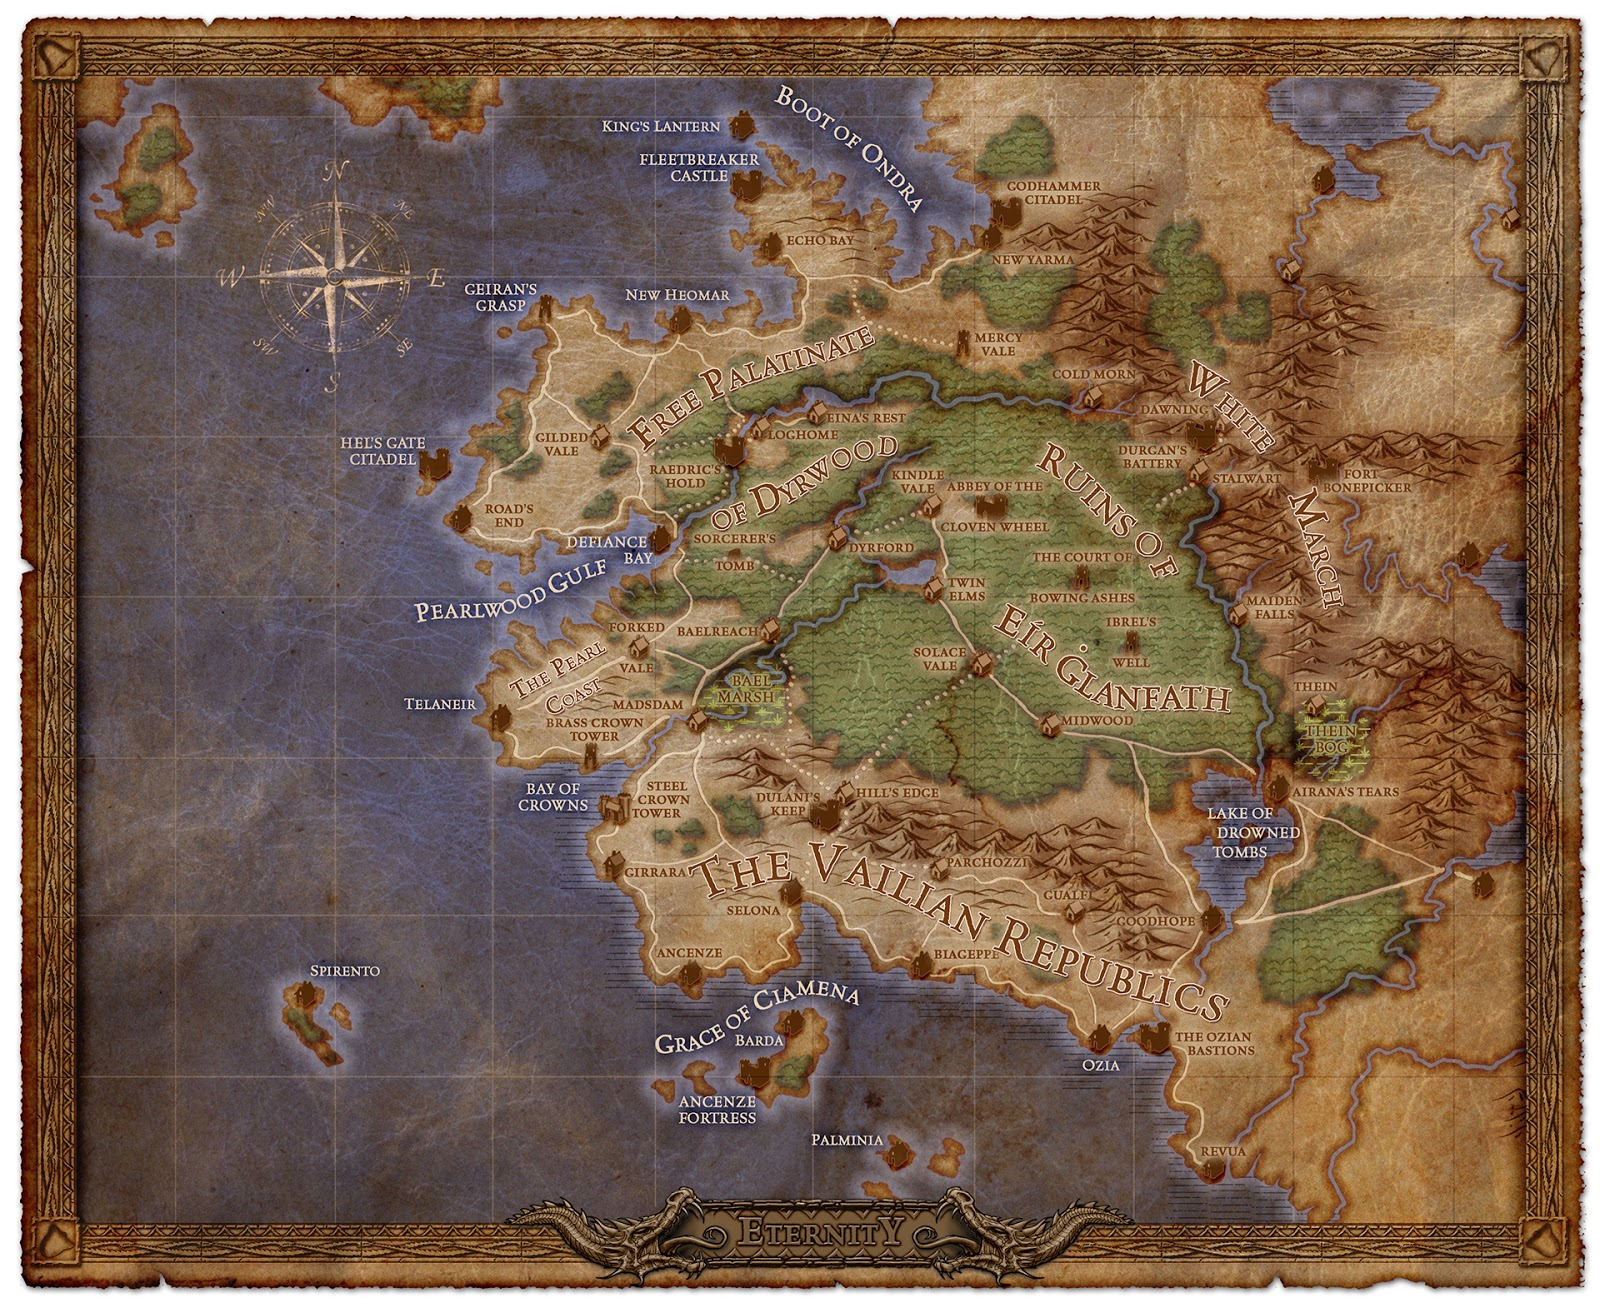 obsidian have released a new map of the world where the game is set which is promised to be a traditional fantasy world with a few twists such as the